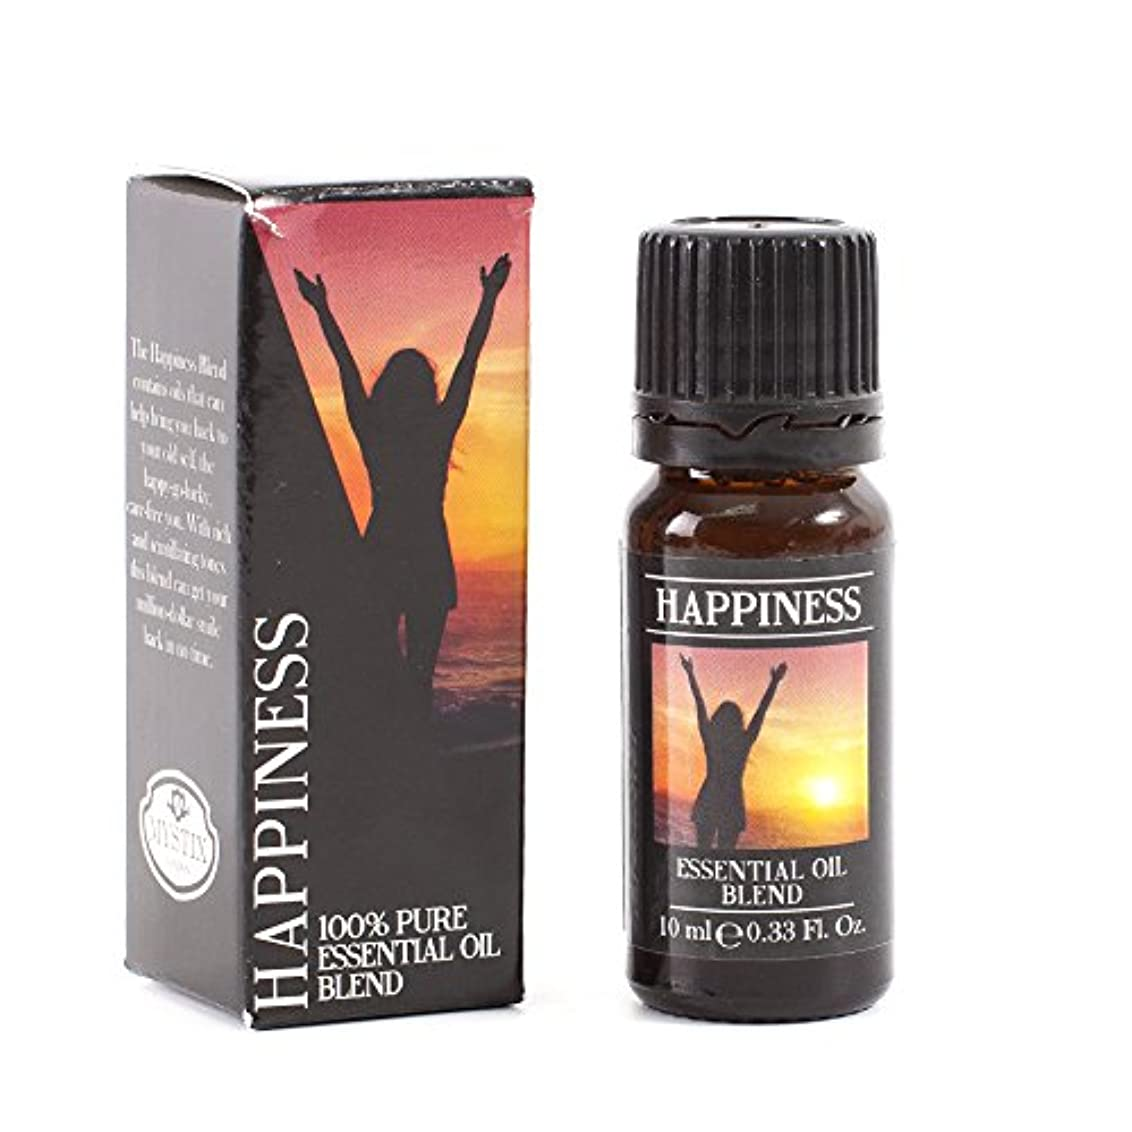 保持量で生むMystix London | Happiness Essential Oil Blend - 10ml - 100% Pure